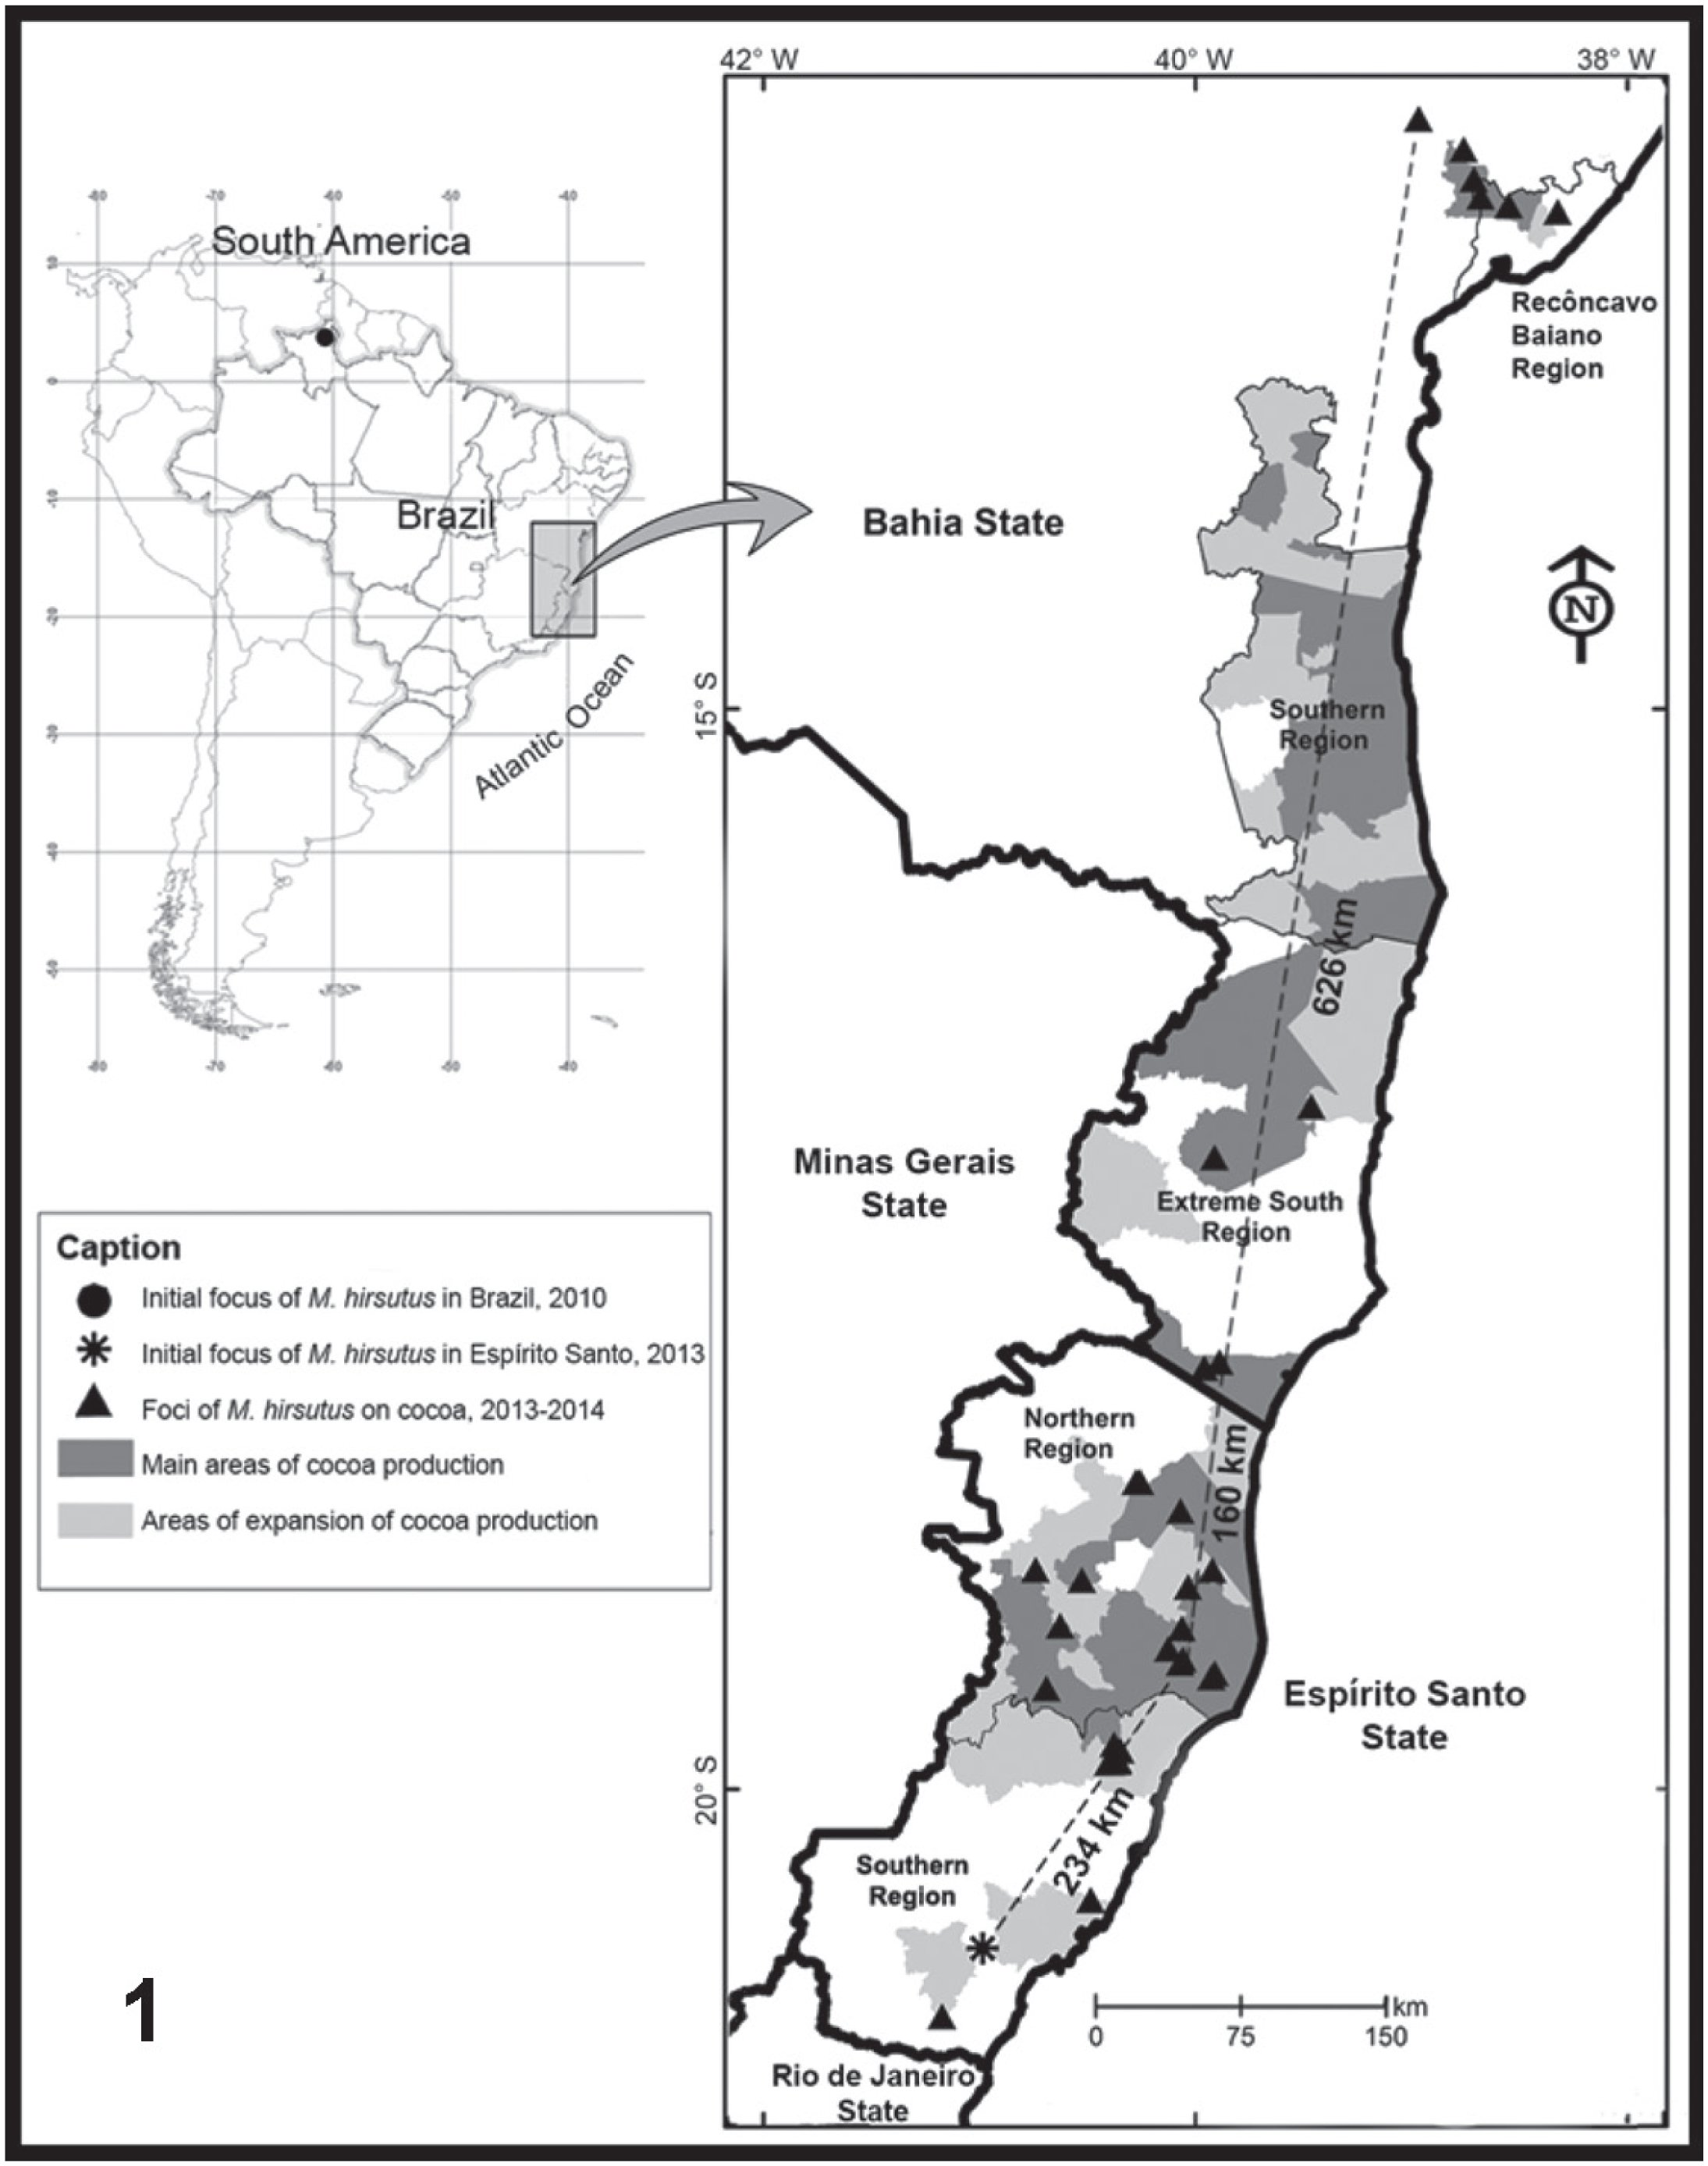 invasion of the main cocoa producing region of south america by